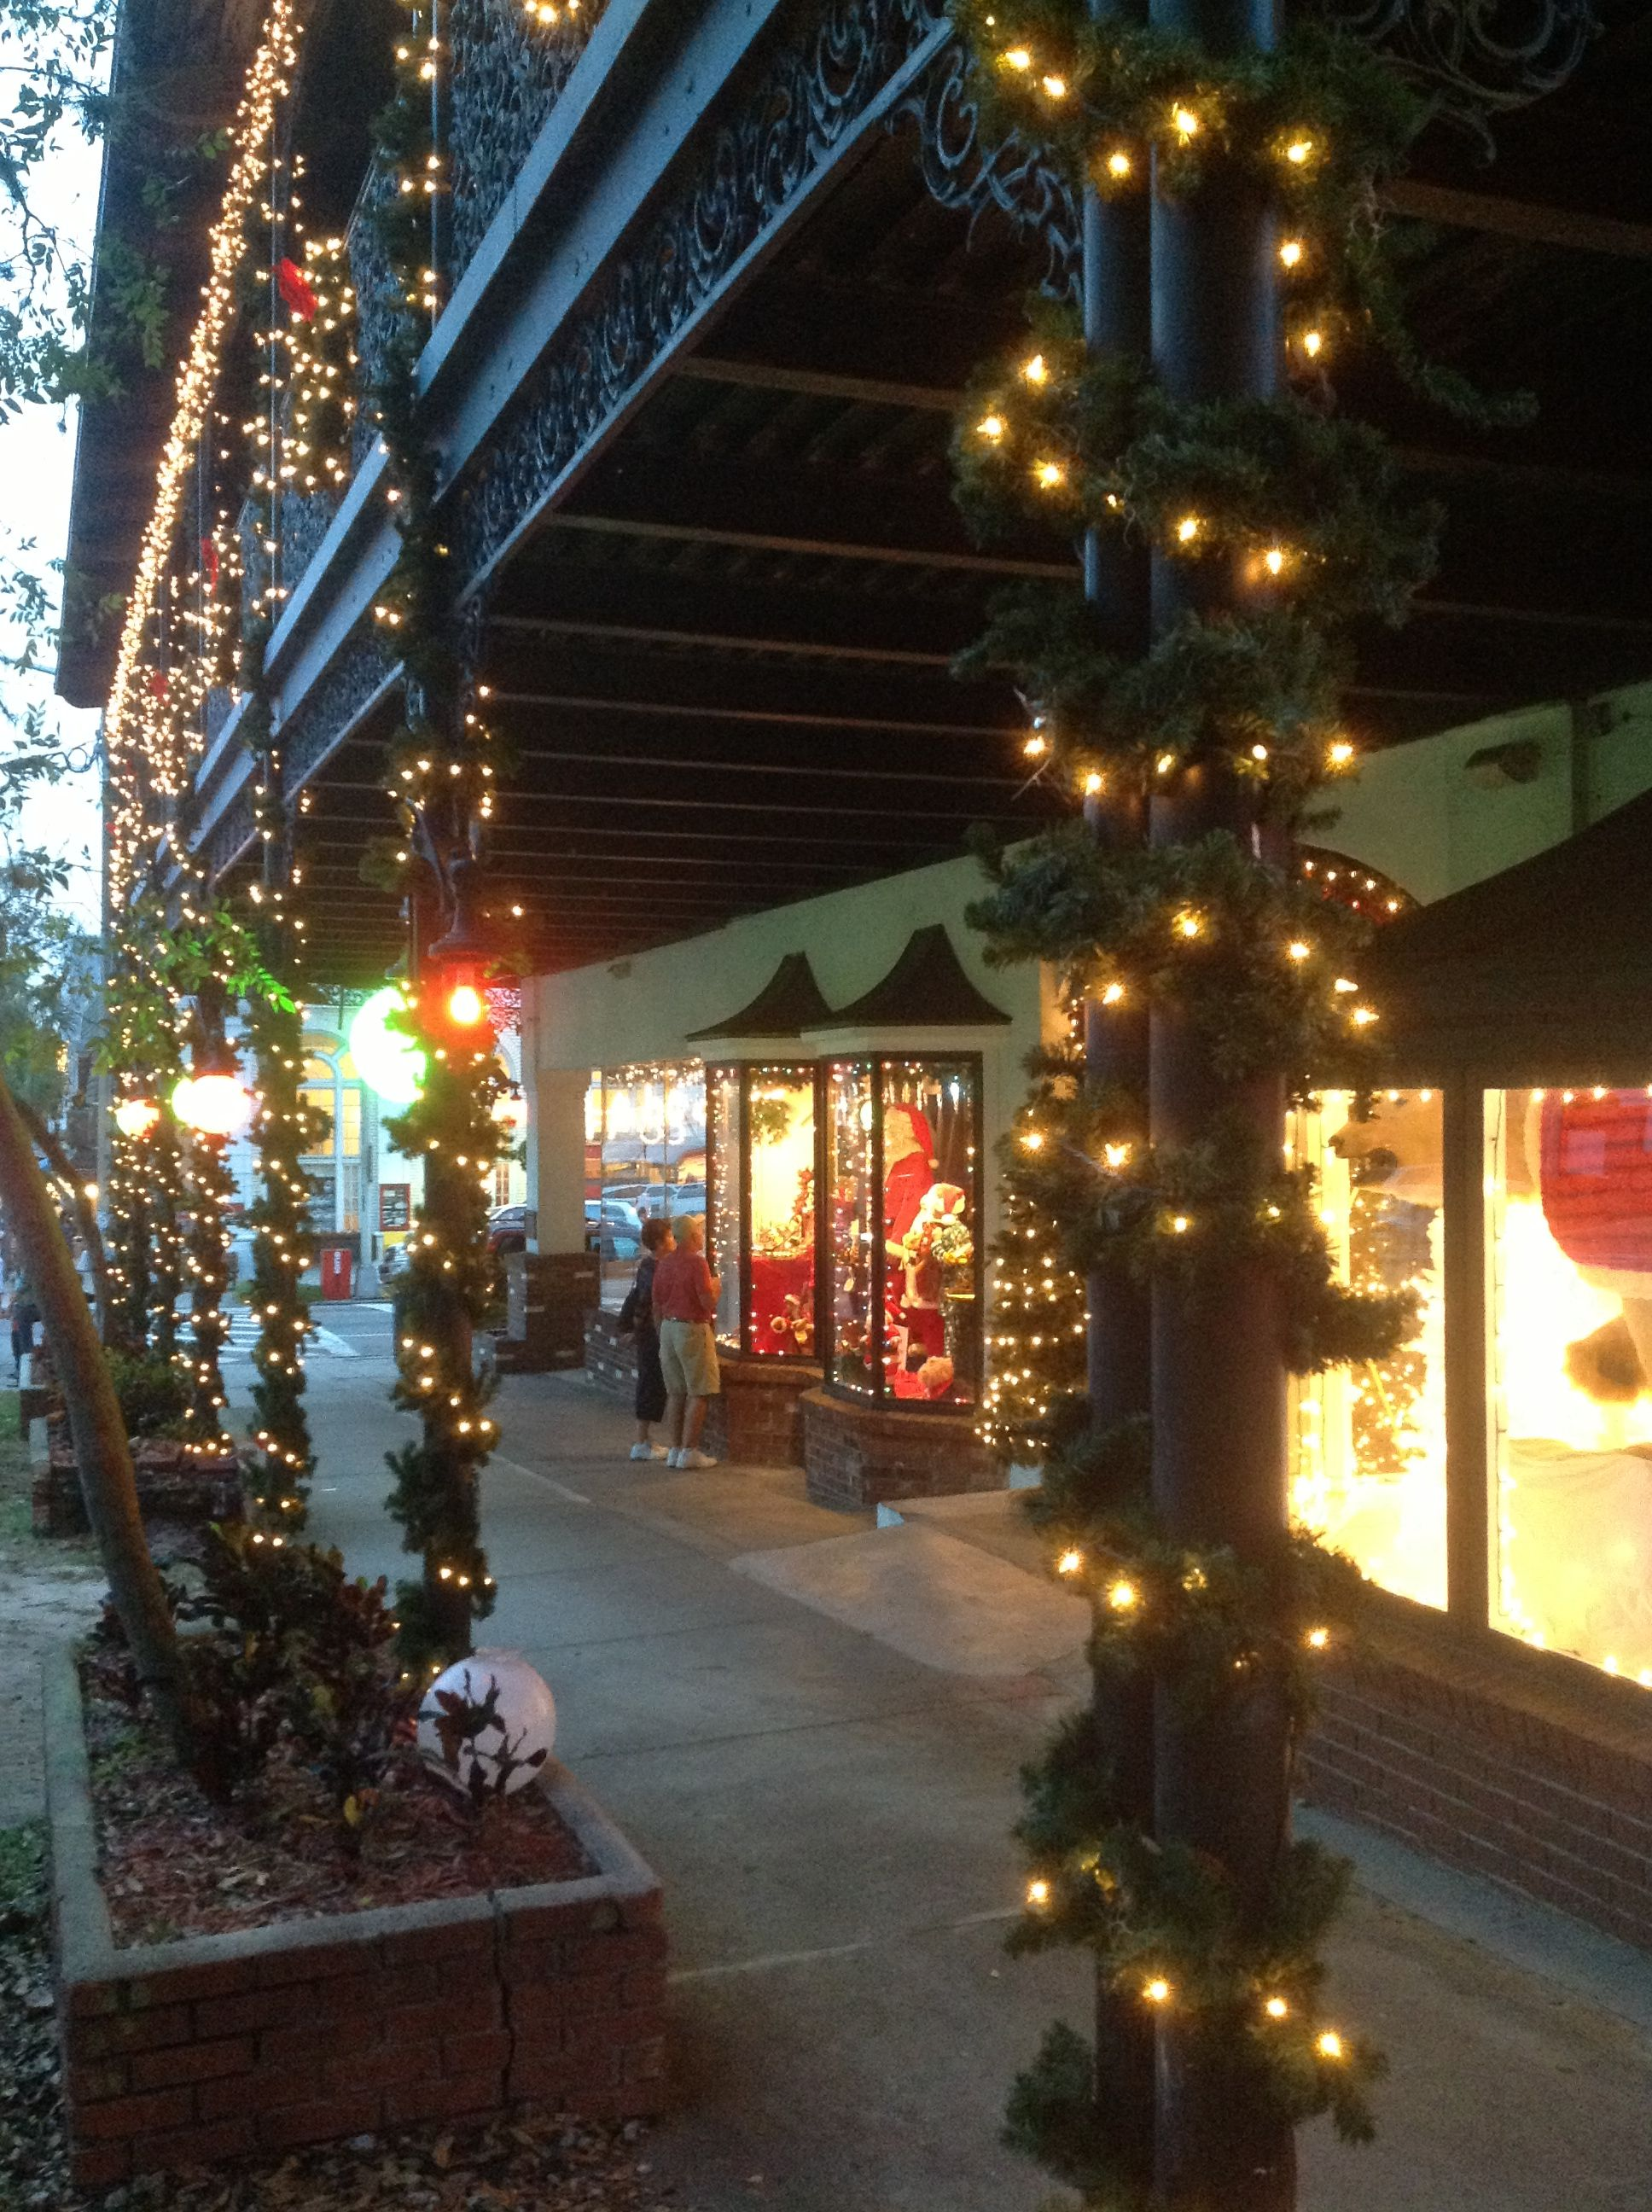 Things To Do In Mt. Dora At Christmas 2020 Christmas in Mt. Dora, Florida. | Florida christmas, Mount dora